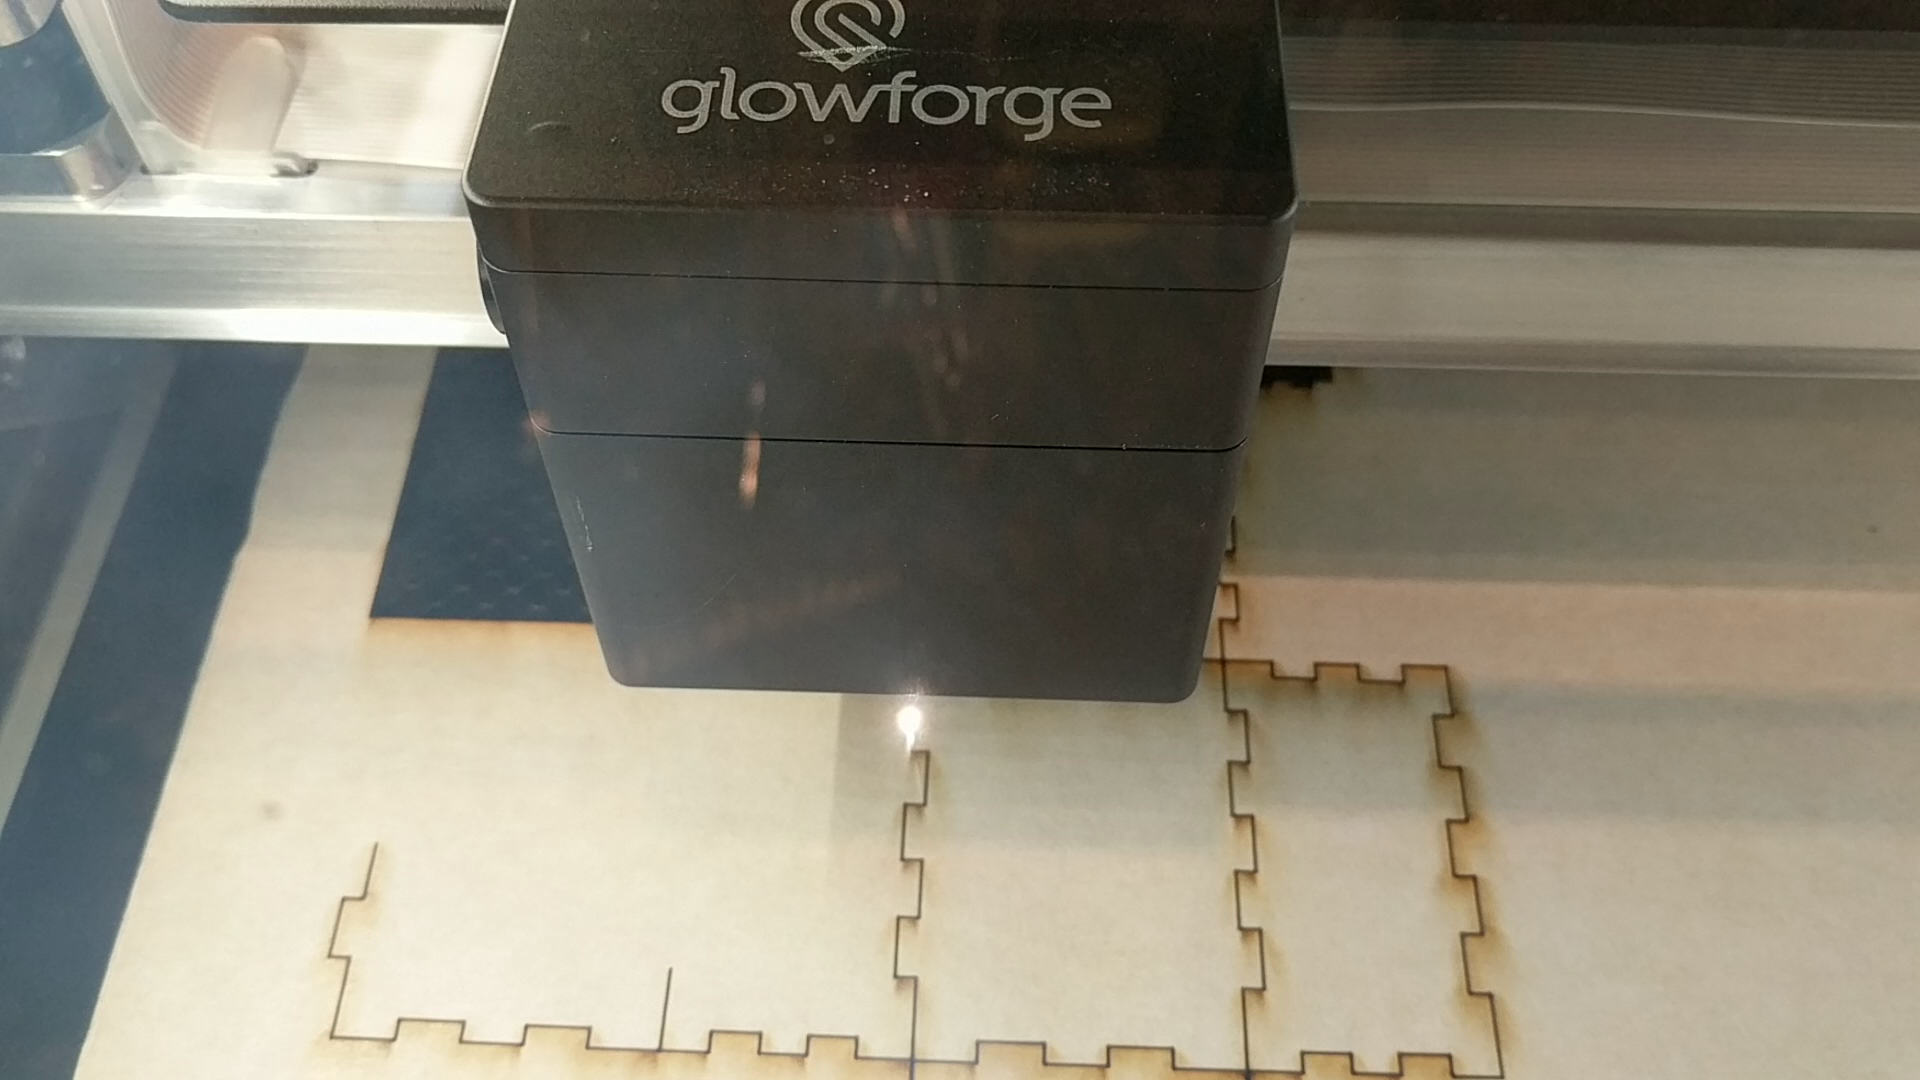 Glowforge and 3D Printing demostrations